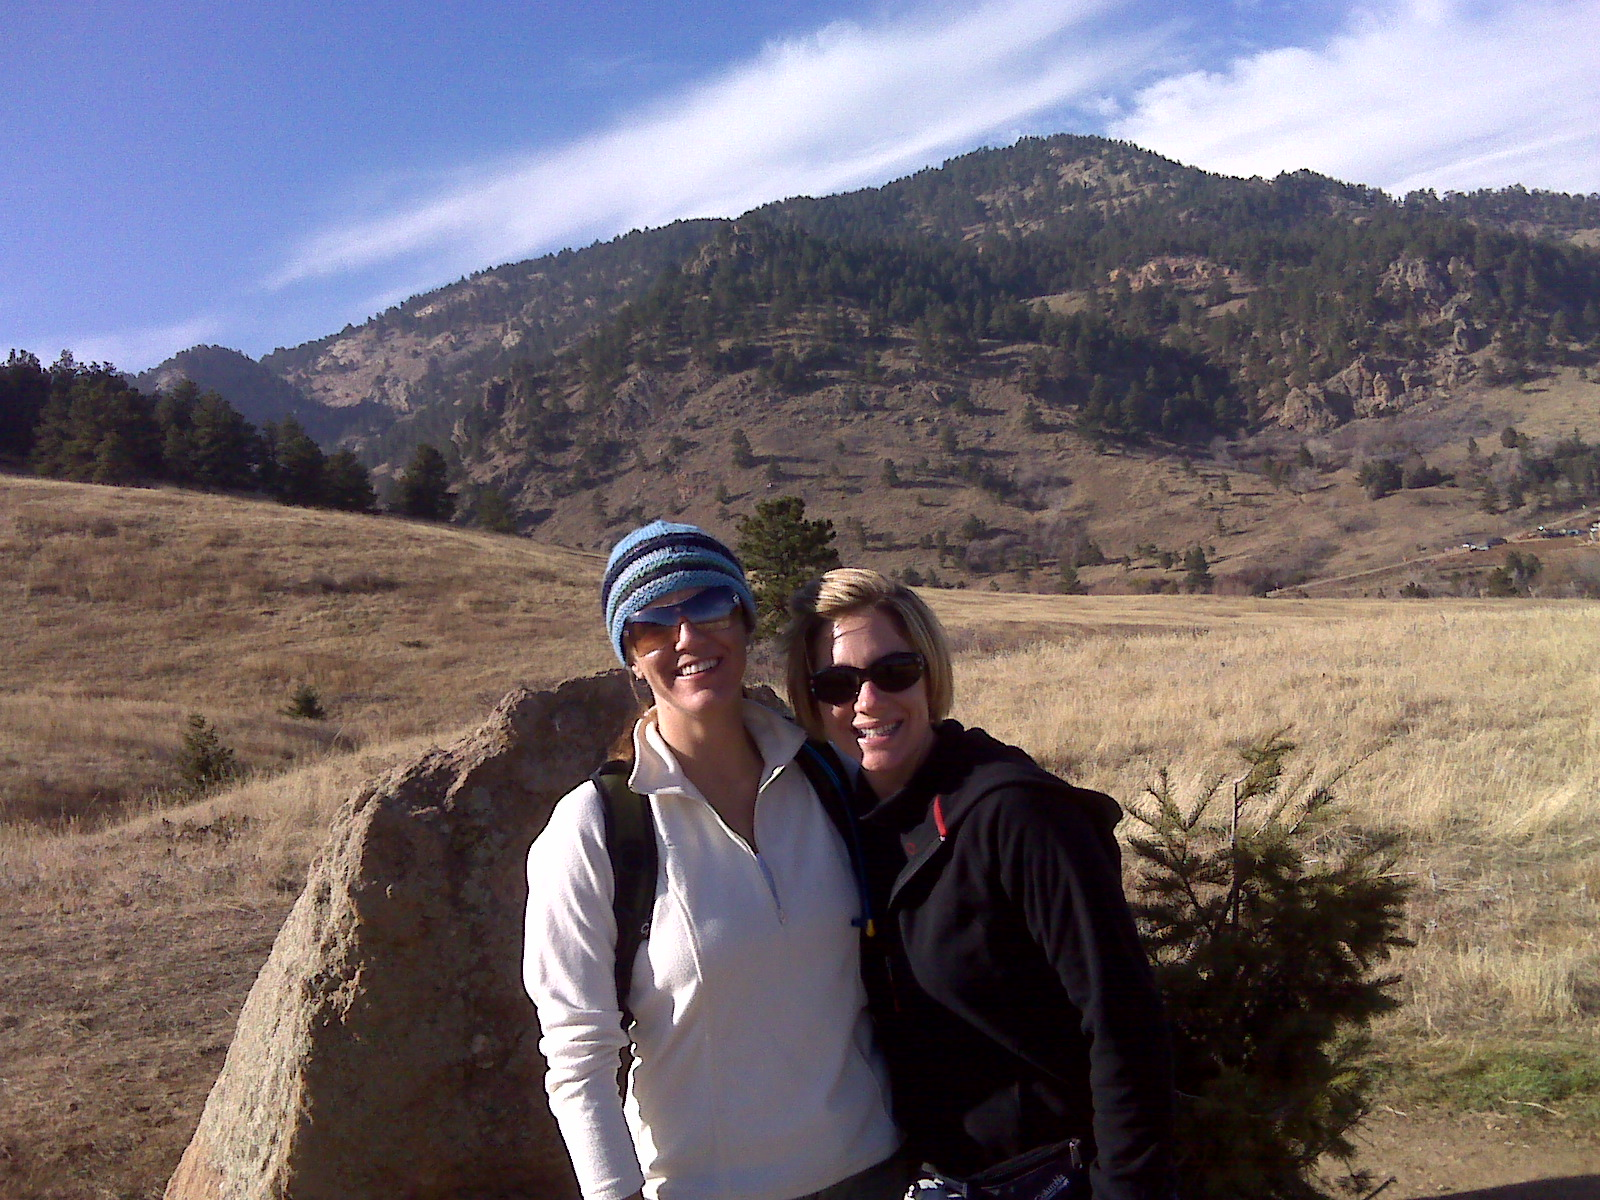 My sister Lisa and I hiking in my own back yard at Chautauqua Park in lovely Boulder, Colorado.